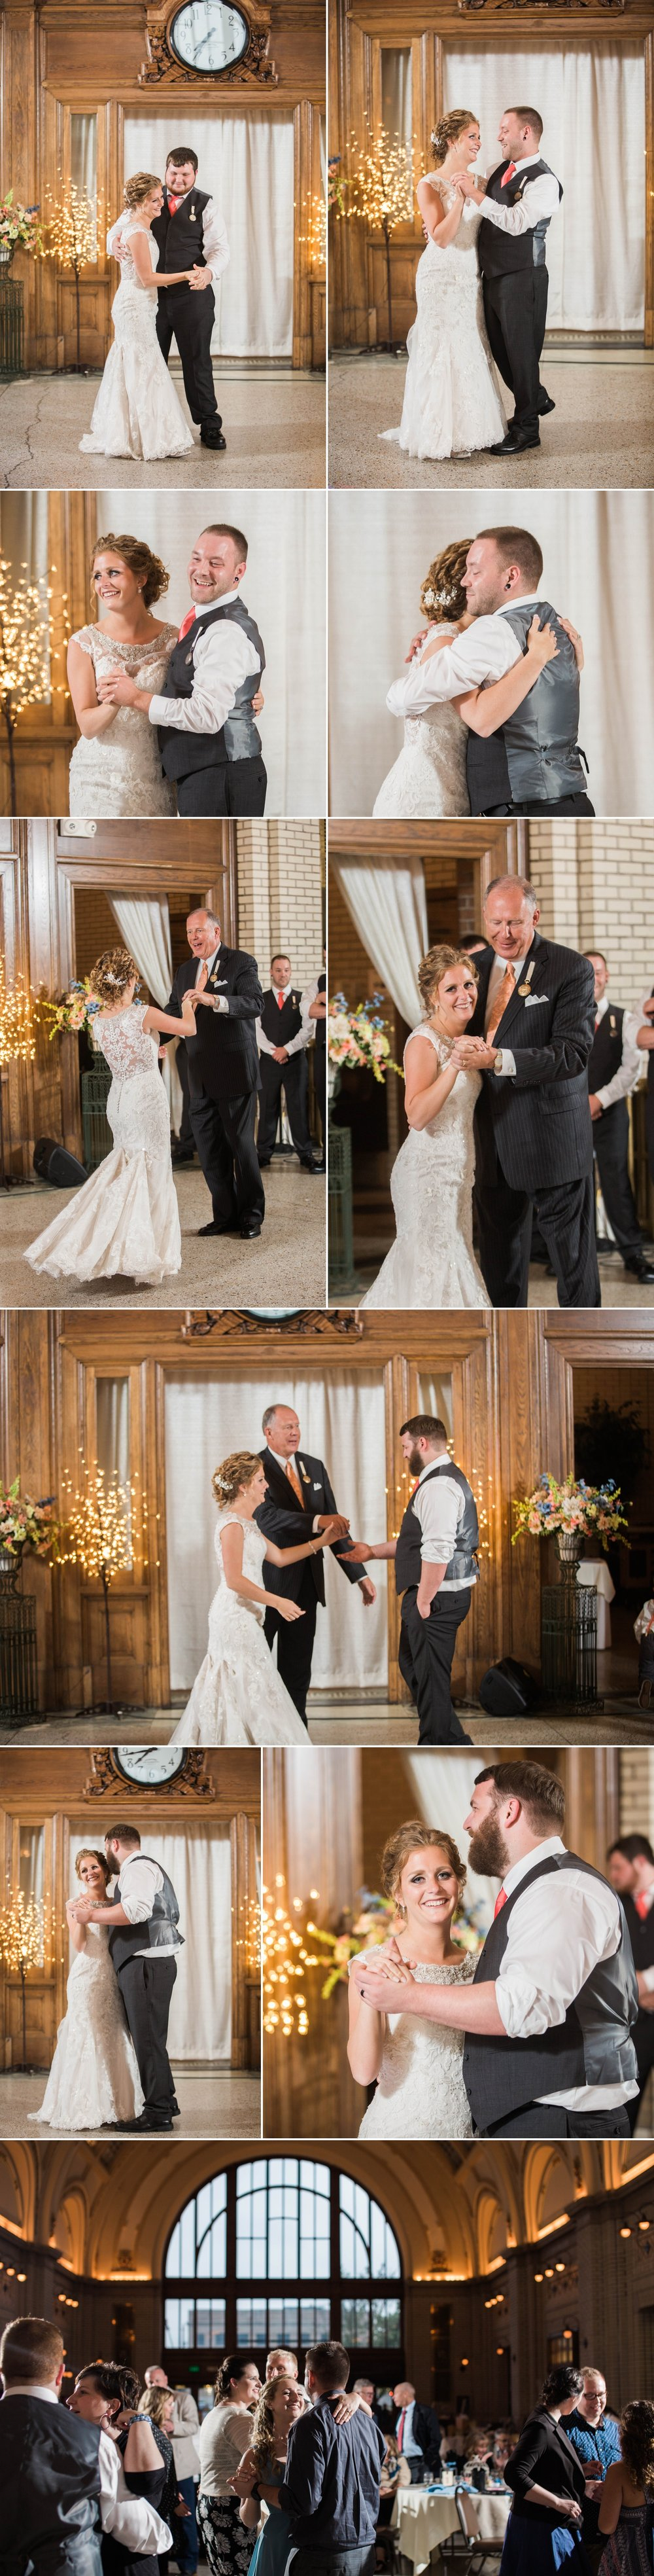 wedding - wedding day - reception - train station - bride - groom - dance